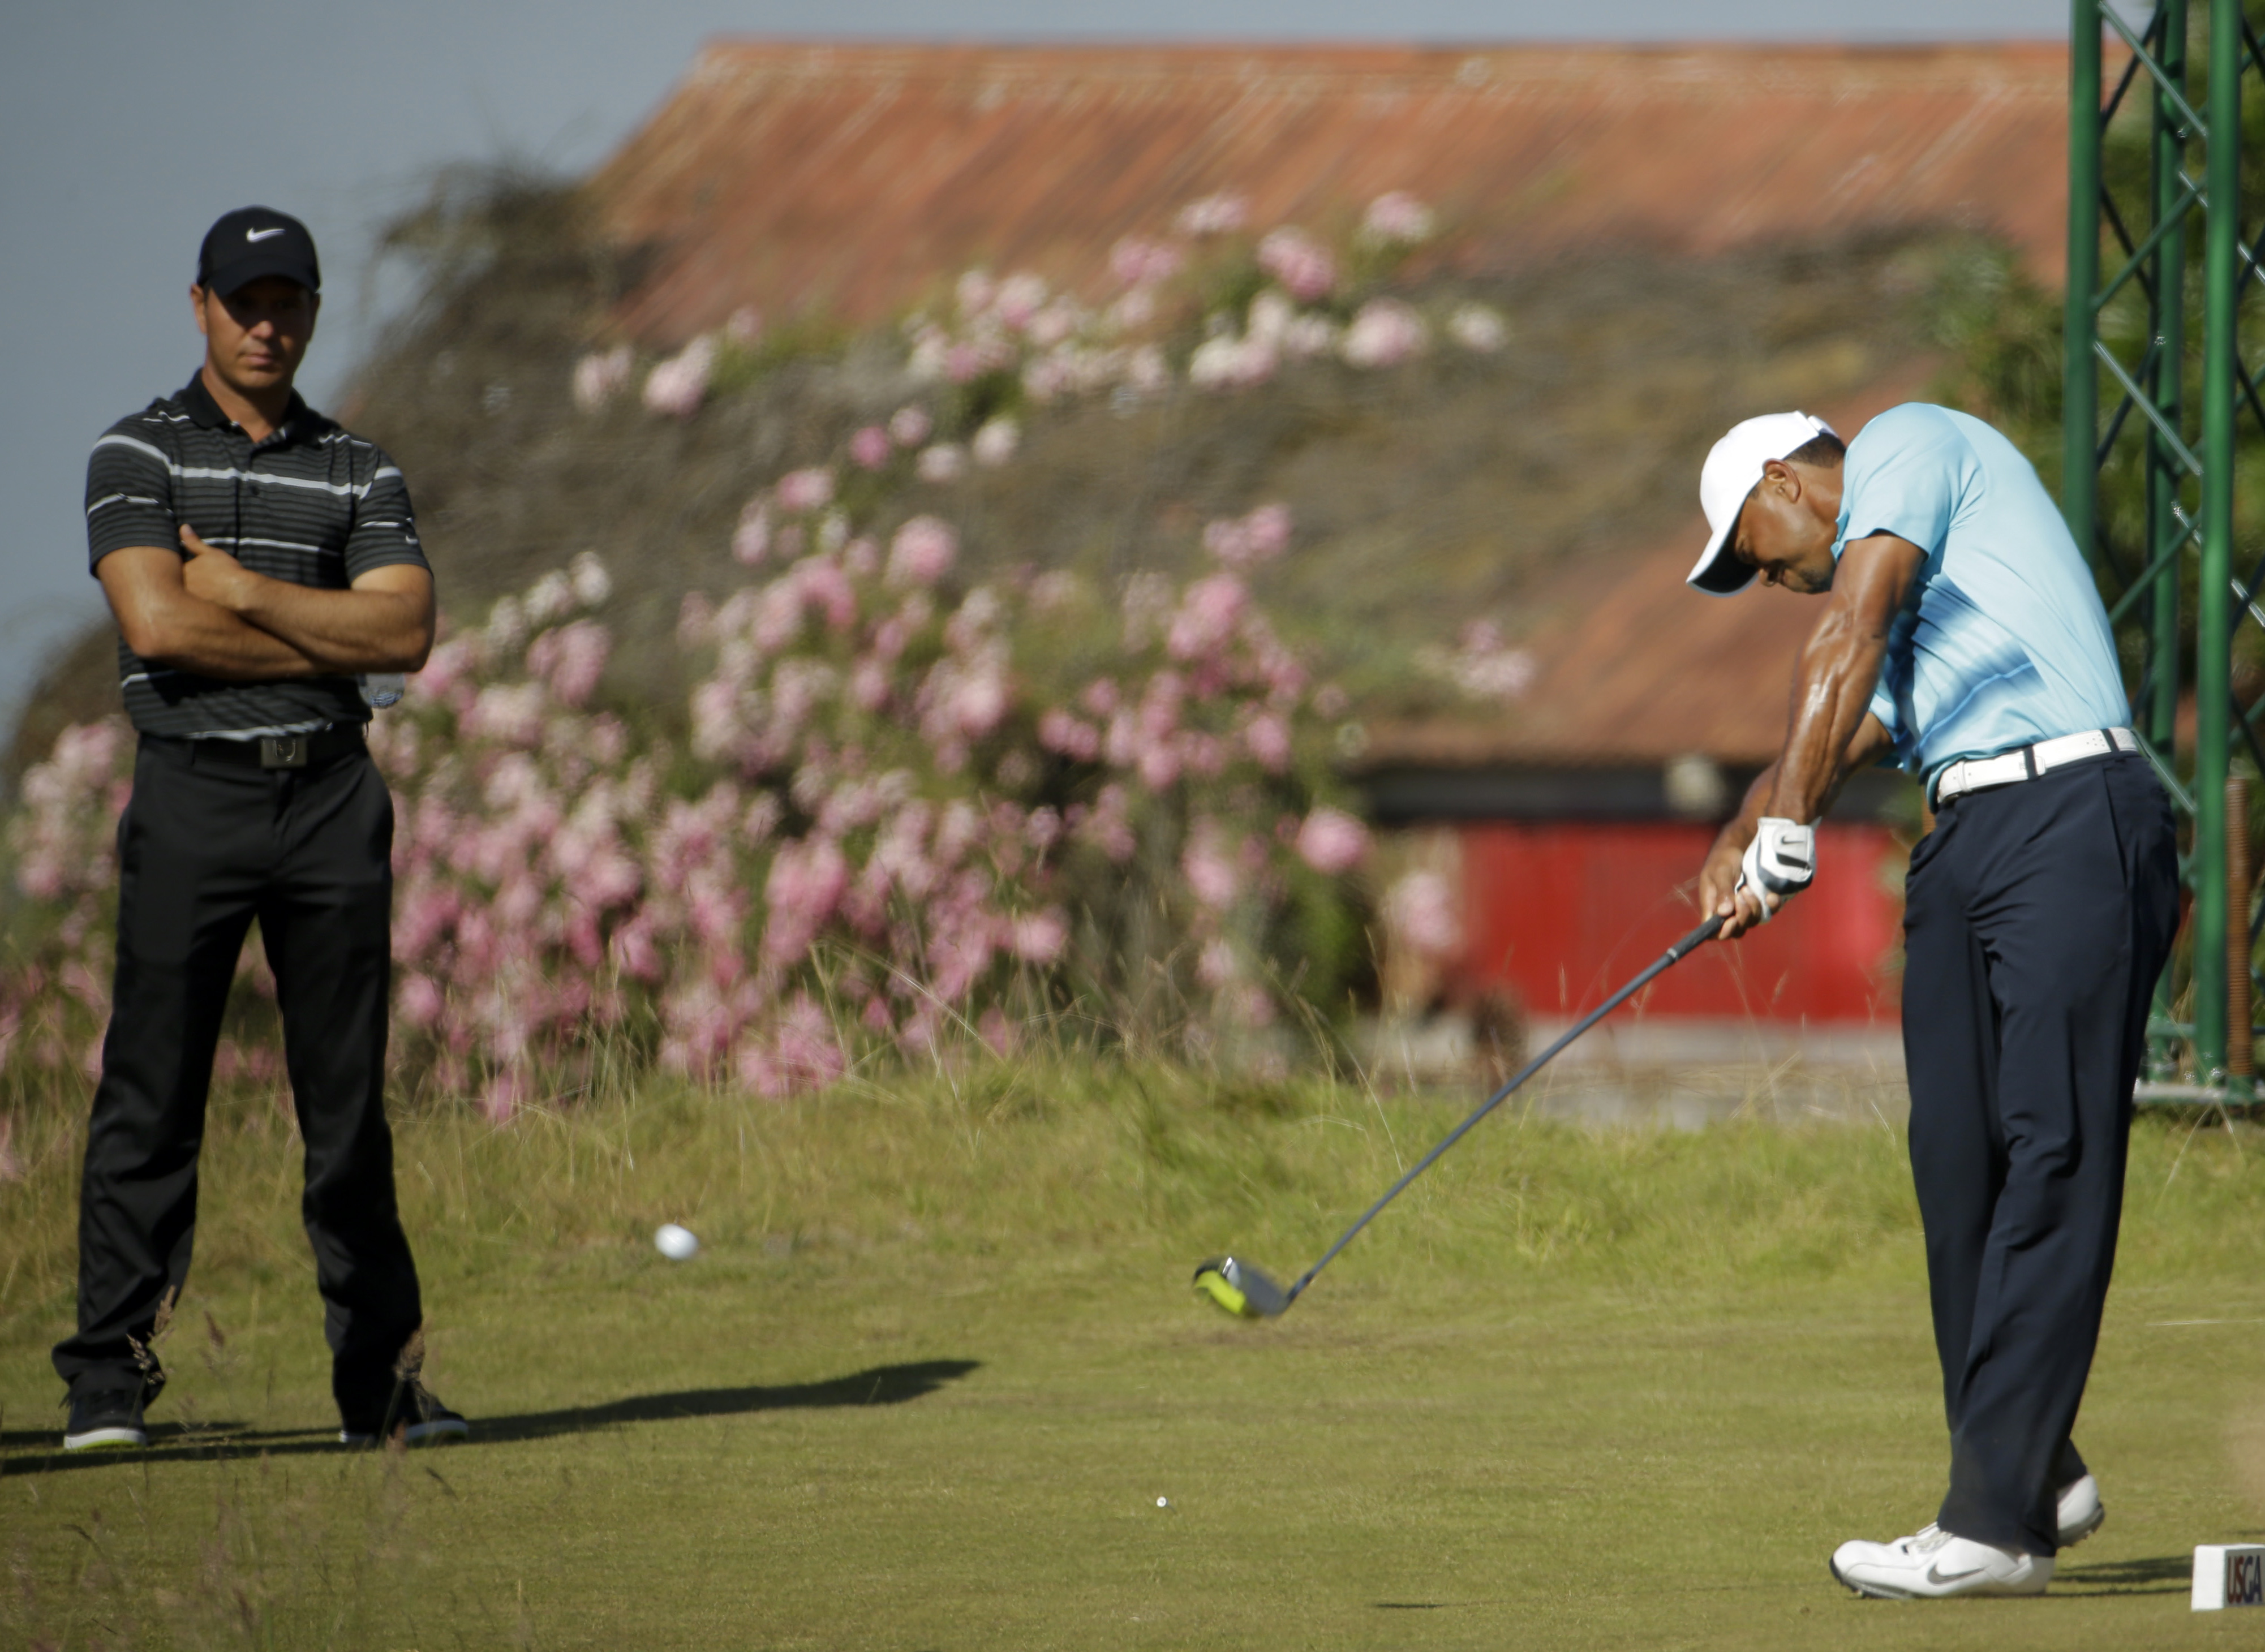 Tiger Wood, right, hits his tee shot on the 17th hole as Jason Day, of Australia, looks on during a practice round for the U.S. Open golf tournament at Chambers Bay, Monday, June 15, 2015, in University Place, Wash. (AP Photo/Ted S. Warren)